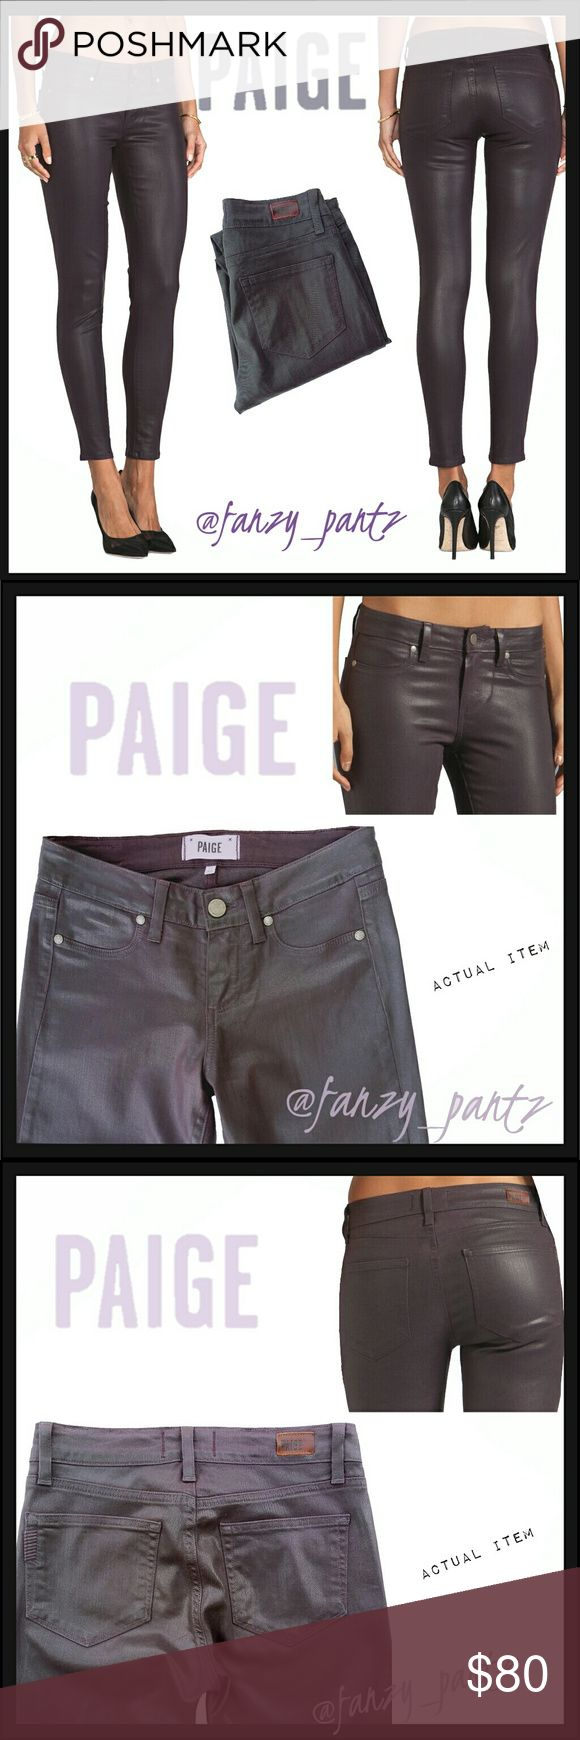 Paige Verdugo Skinny Coated jeans NWOT  Paige Verdugo ankle jeans in 'Coated Black Cherry Silk'.  Dark metallic purple skinny ankle crops with stretch. 8 inch rise, 13 inch waist when laid flat, 28 inch inseam.  Stock photo is exact style and color. Photos 2-5 are of actual item and taken by me.  351770 Paige Jeans Jeans Skinny